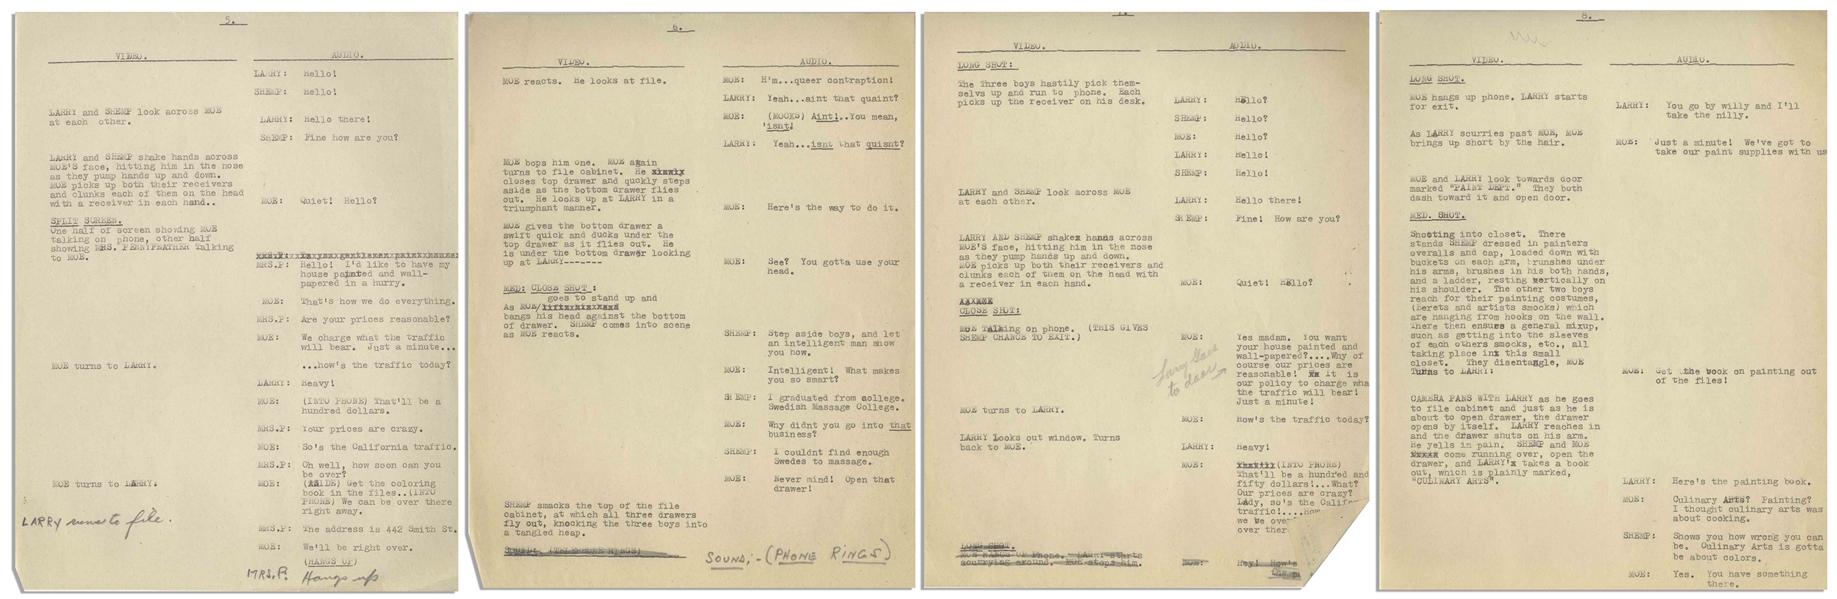 Moe Howard's 29pp. Script for The Three Stooges 1949 Pilot TV Show ''Jerks of All Trades'' With Shemp -- Annotated by Moe, With His Signature -- 8.5'' x 11'' -- Very Good Condition